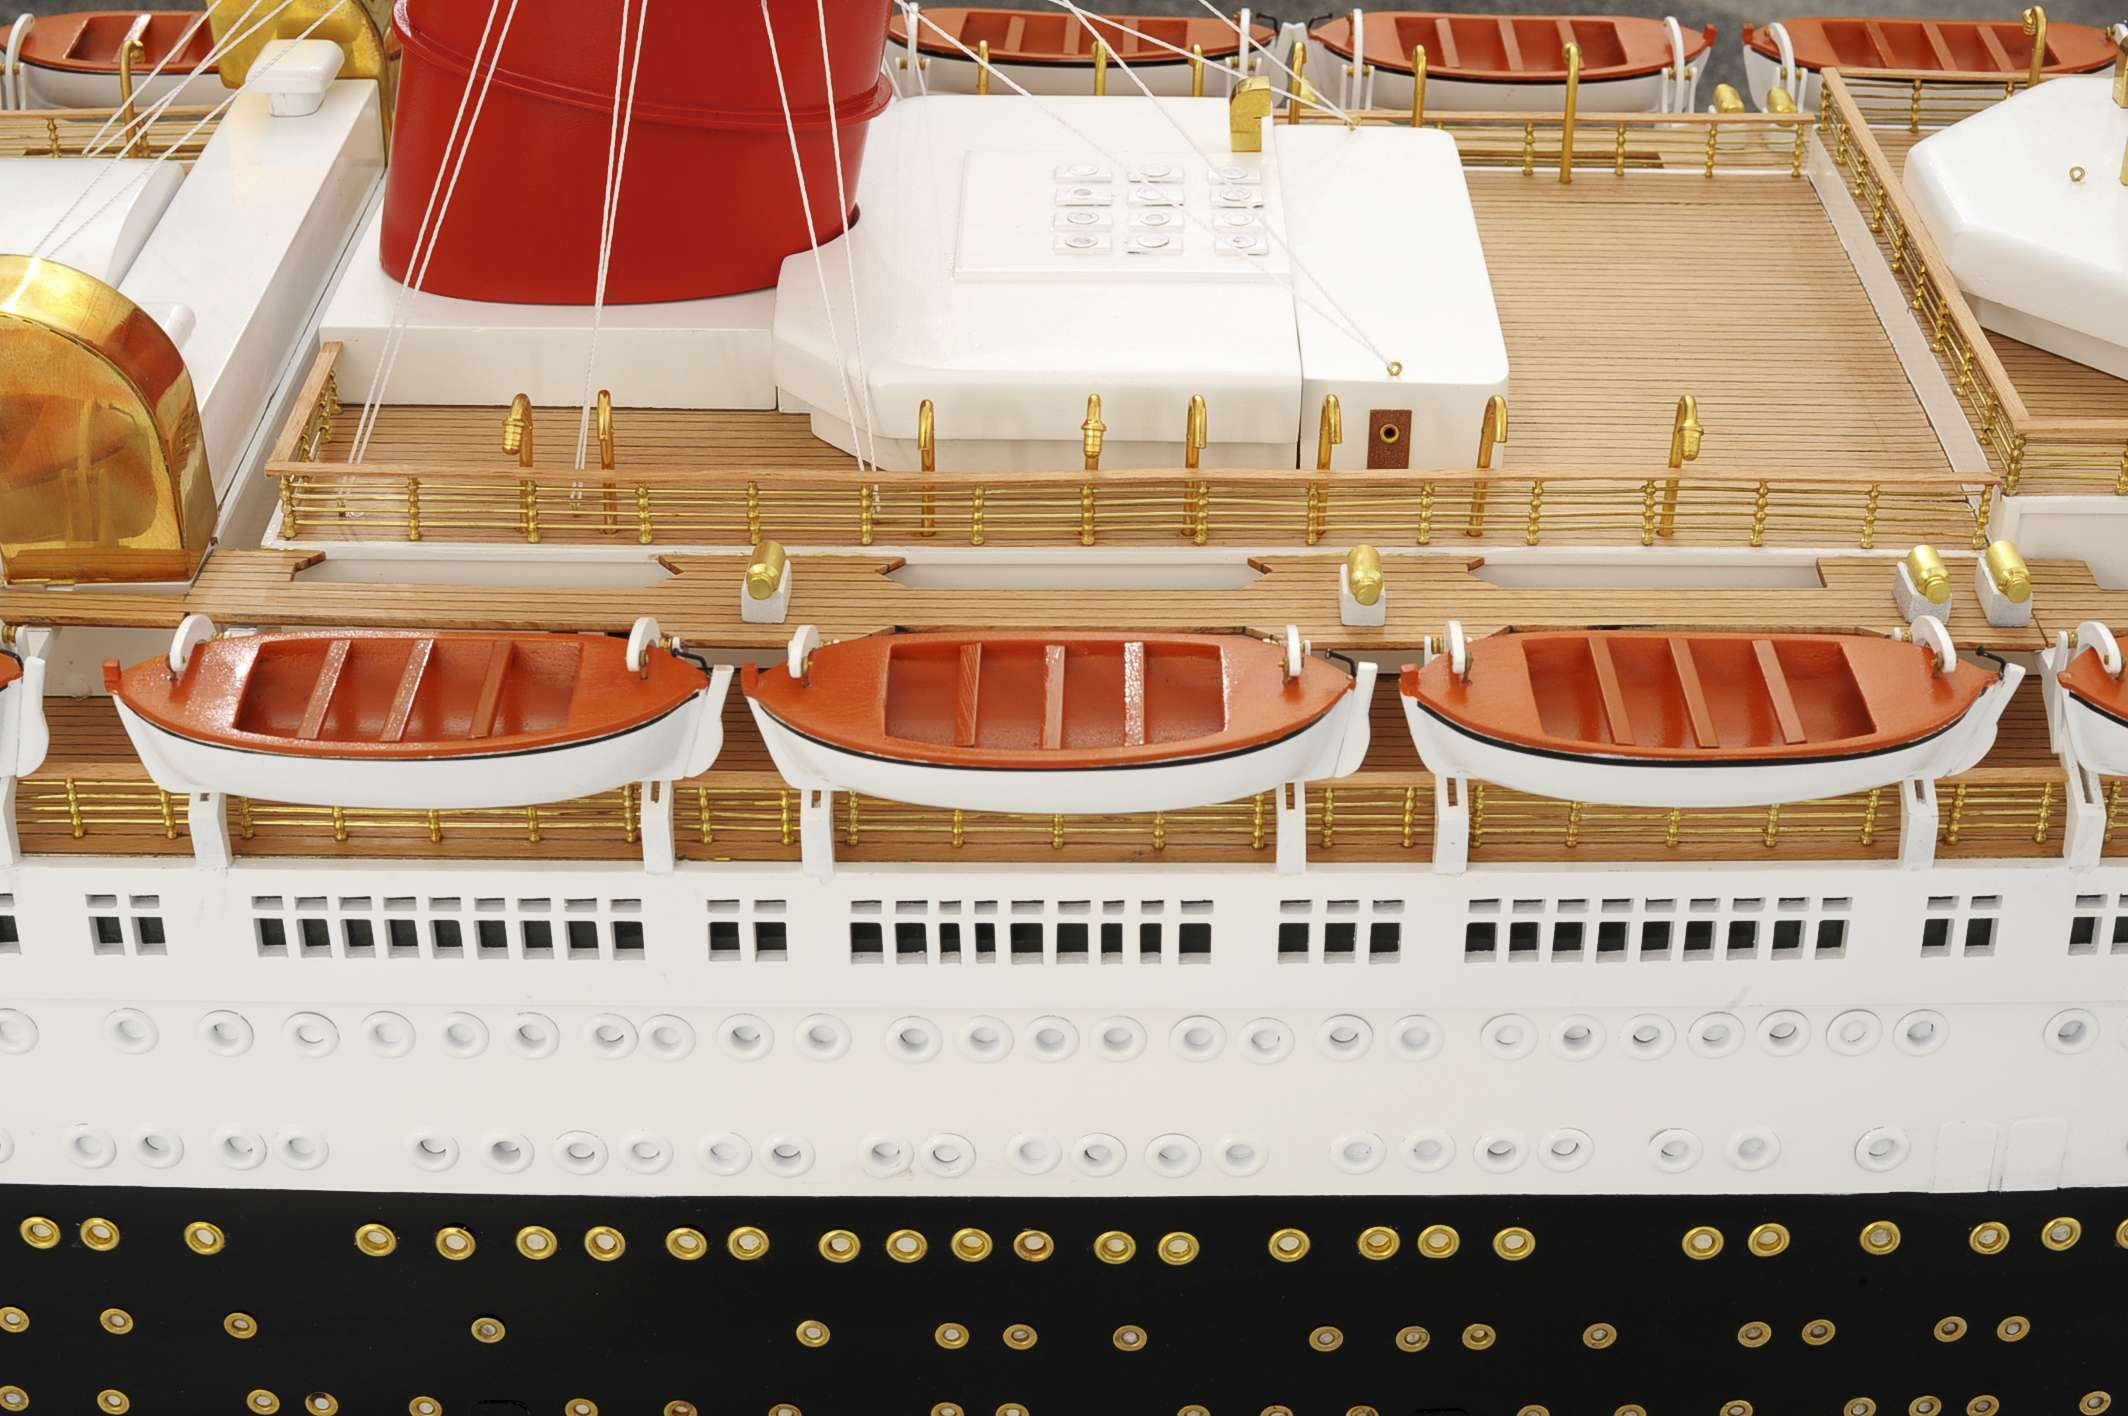 1484-4991-RMS-Queen-Mary-Model